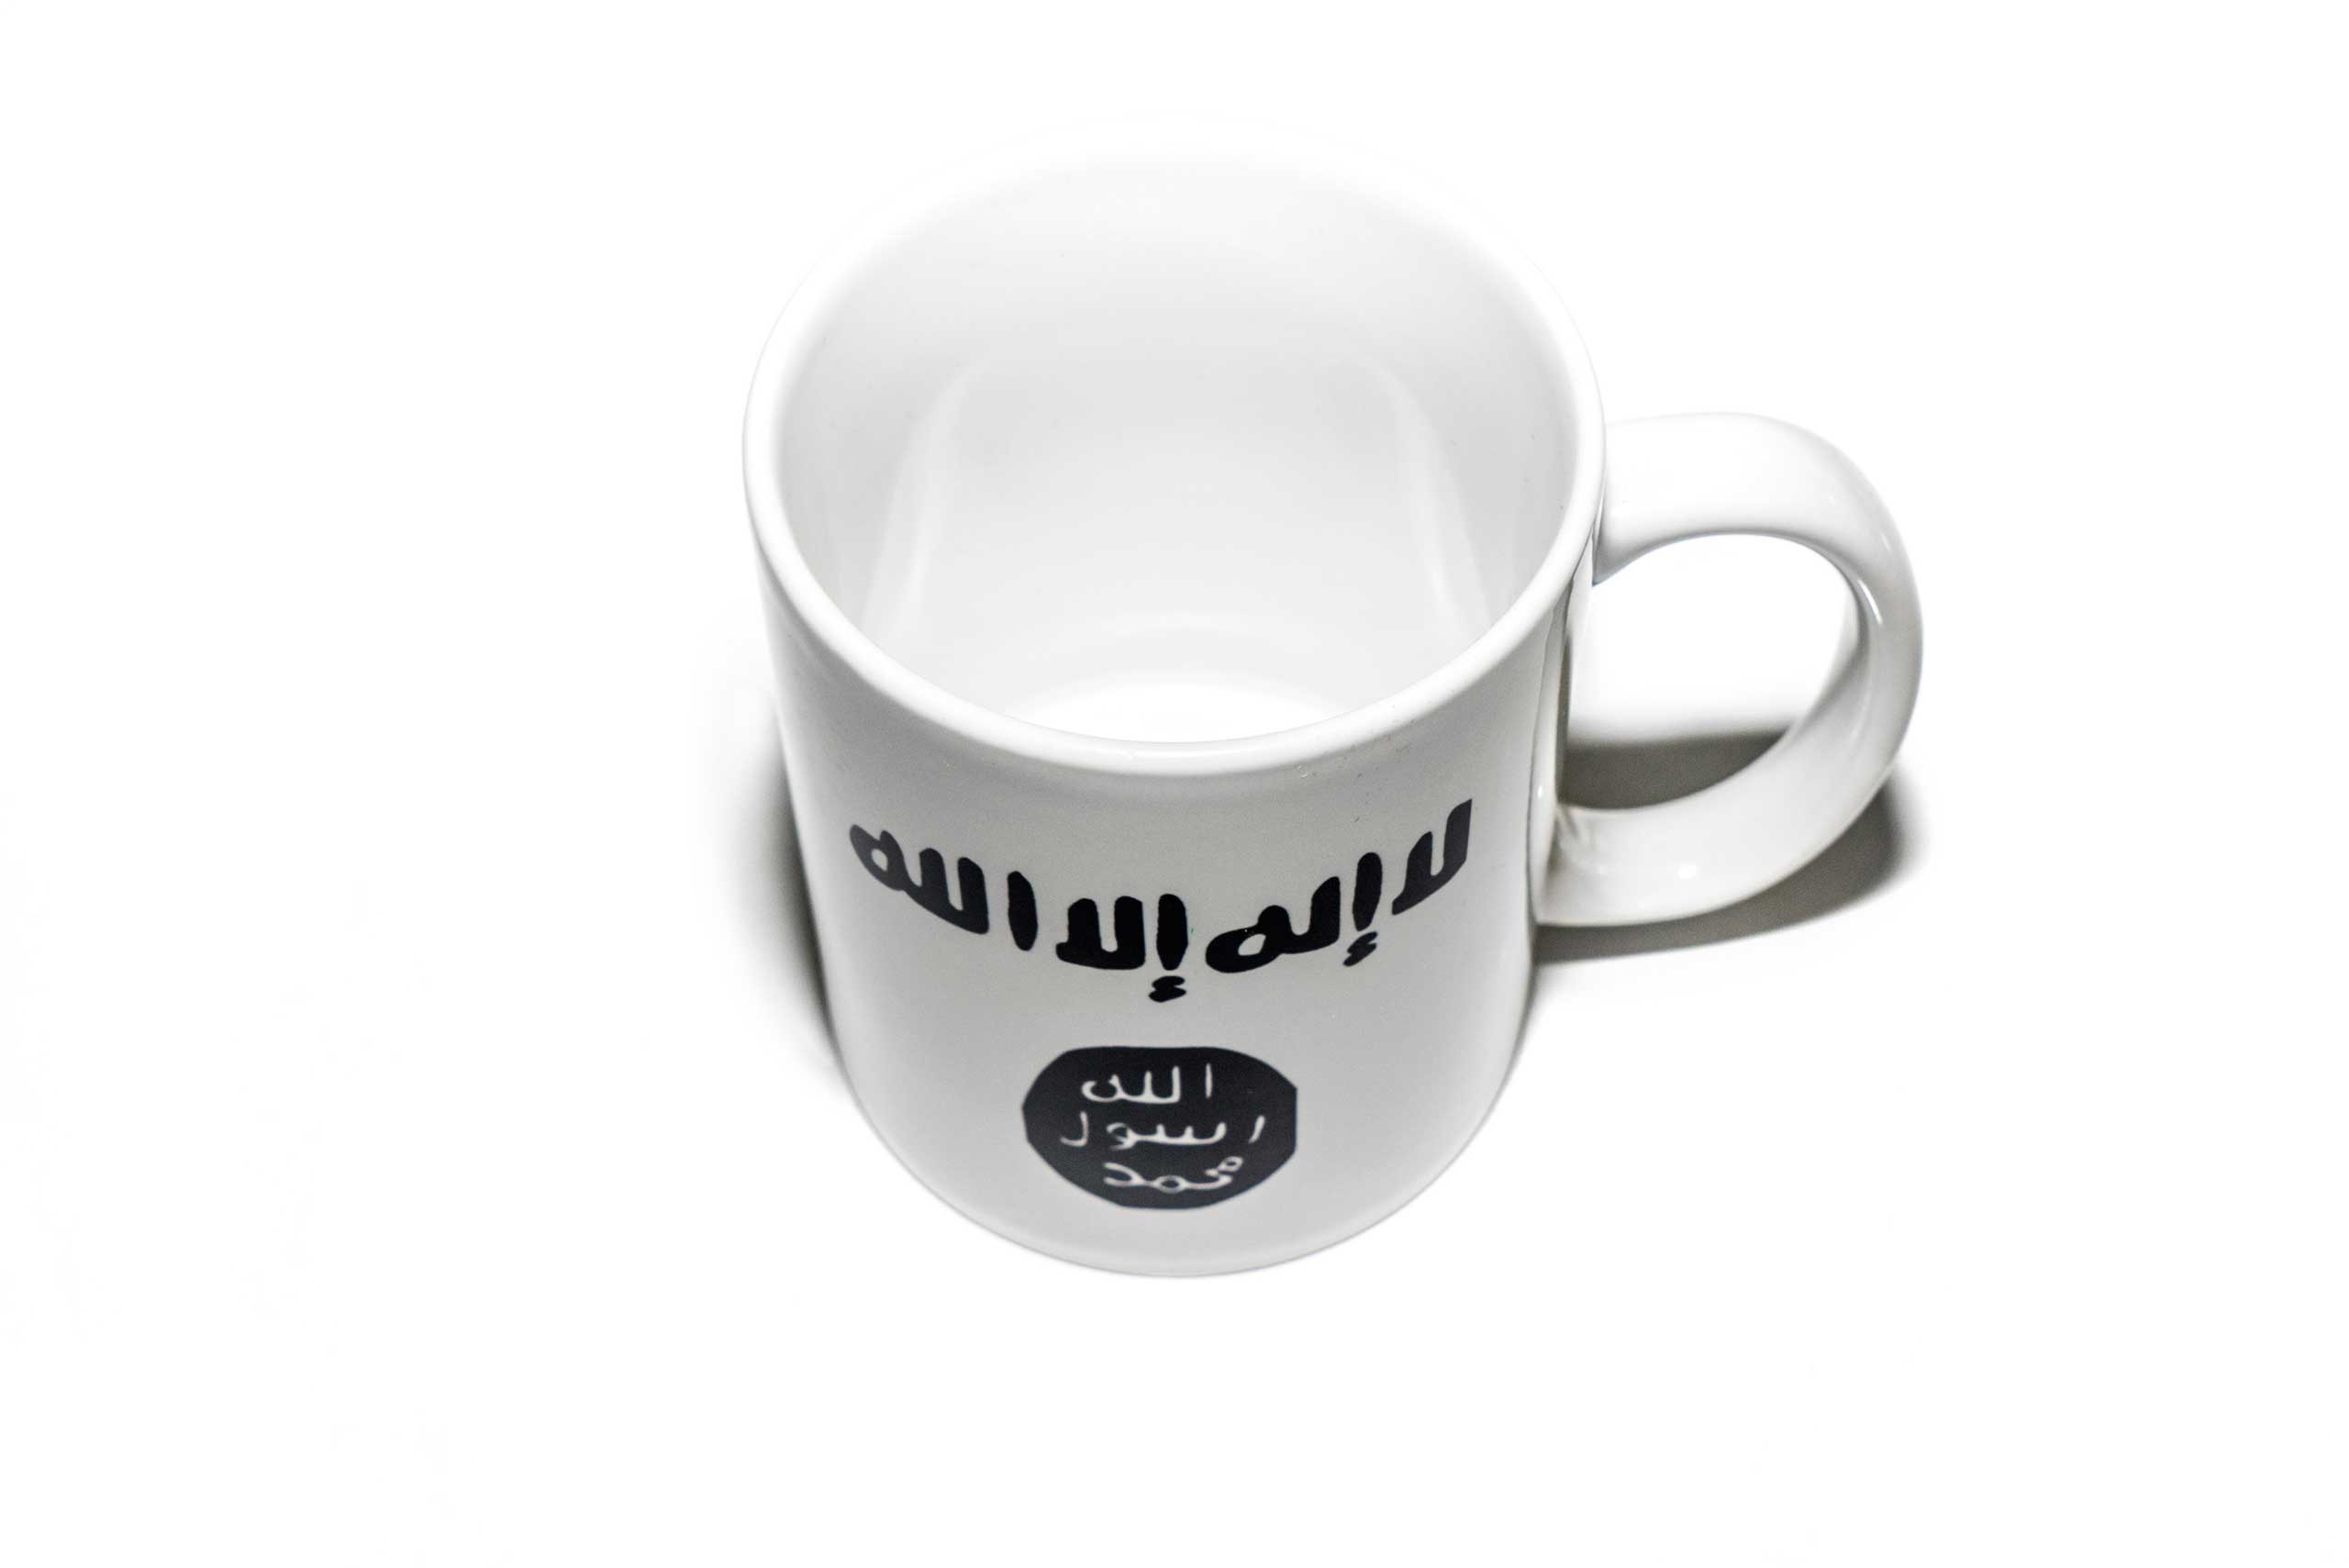 A  mug with the iconography of Islamic State on the side, found in a Islamic clothing and accessory shop in the Bagcilar district of Istanbul, Turkey.